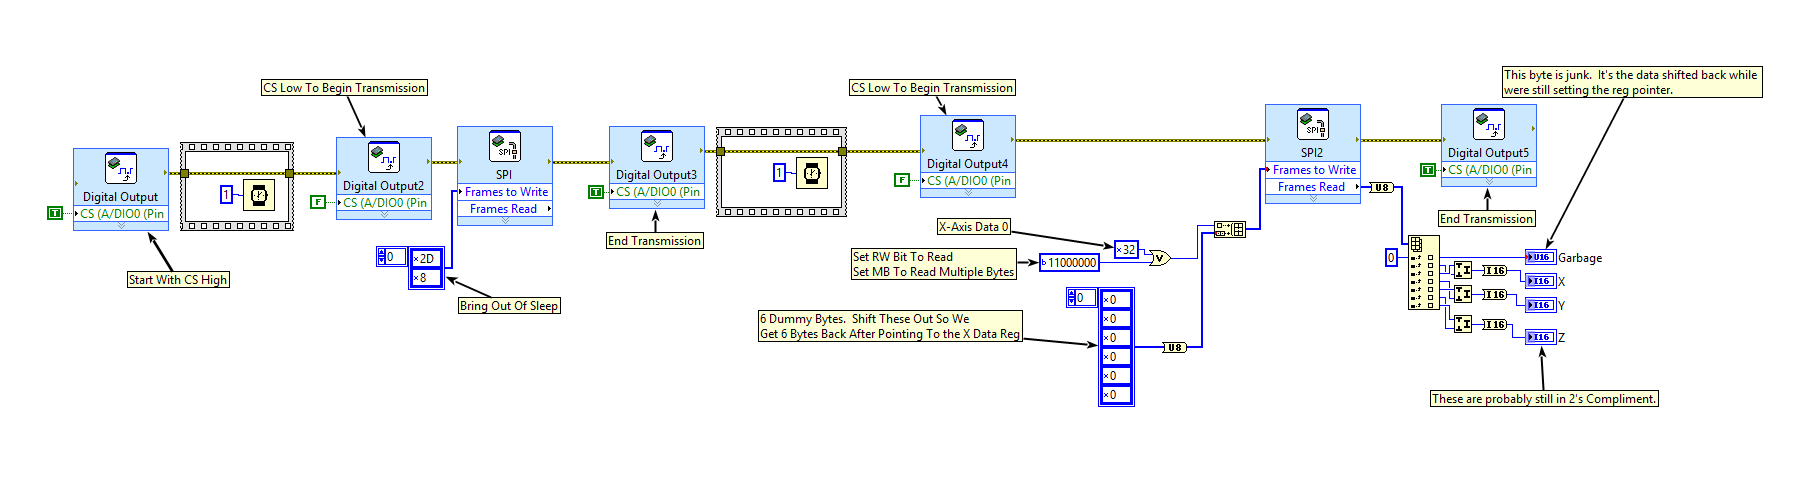 Adxl345 Via Spi Myrio Discussion Forums National Instruments Timing Diagram Here Is My First Stab At It I Dont Have The Sensor To Tests With So Let Me Know If This Works Ill Explain Differences Once We Figure Out